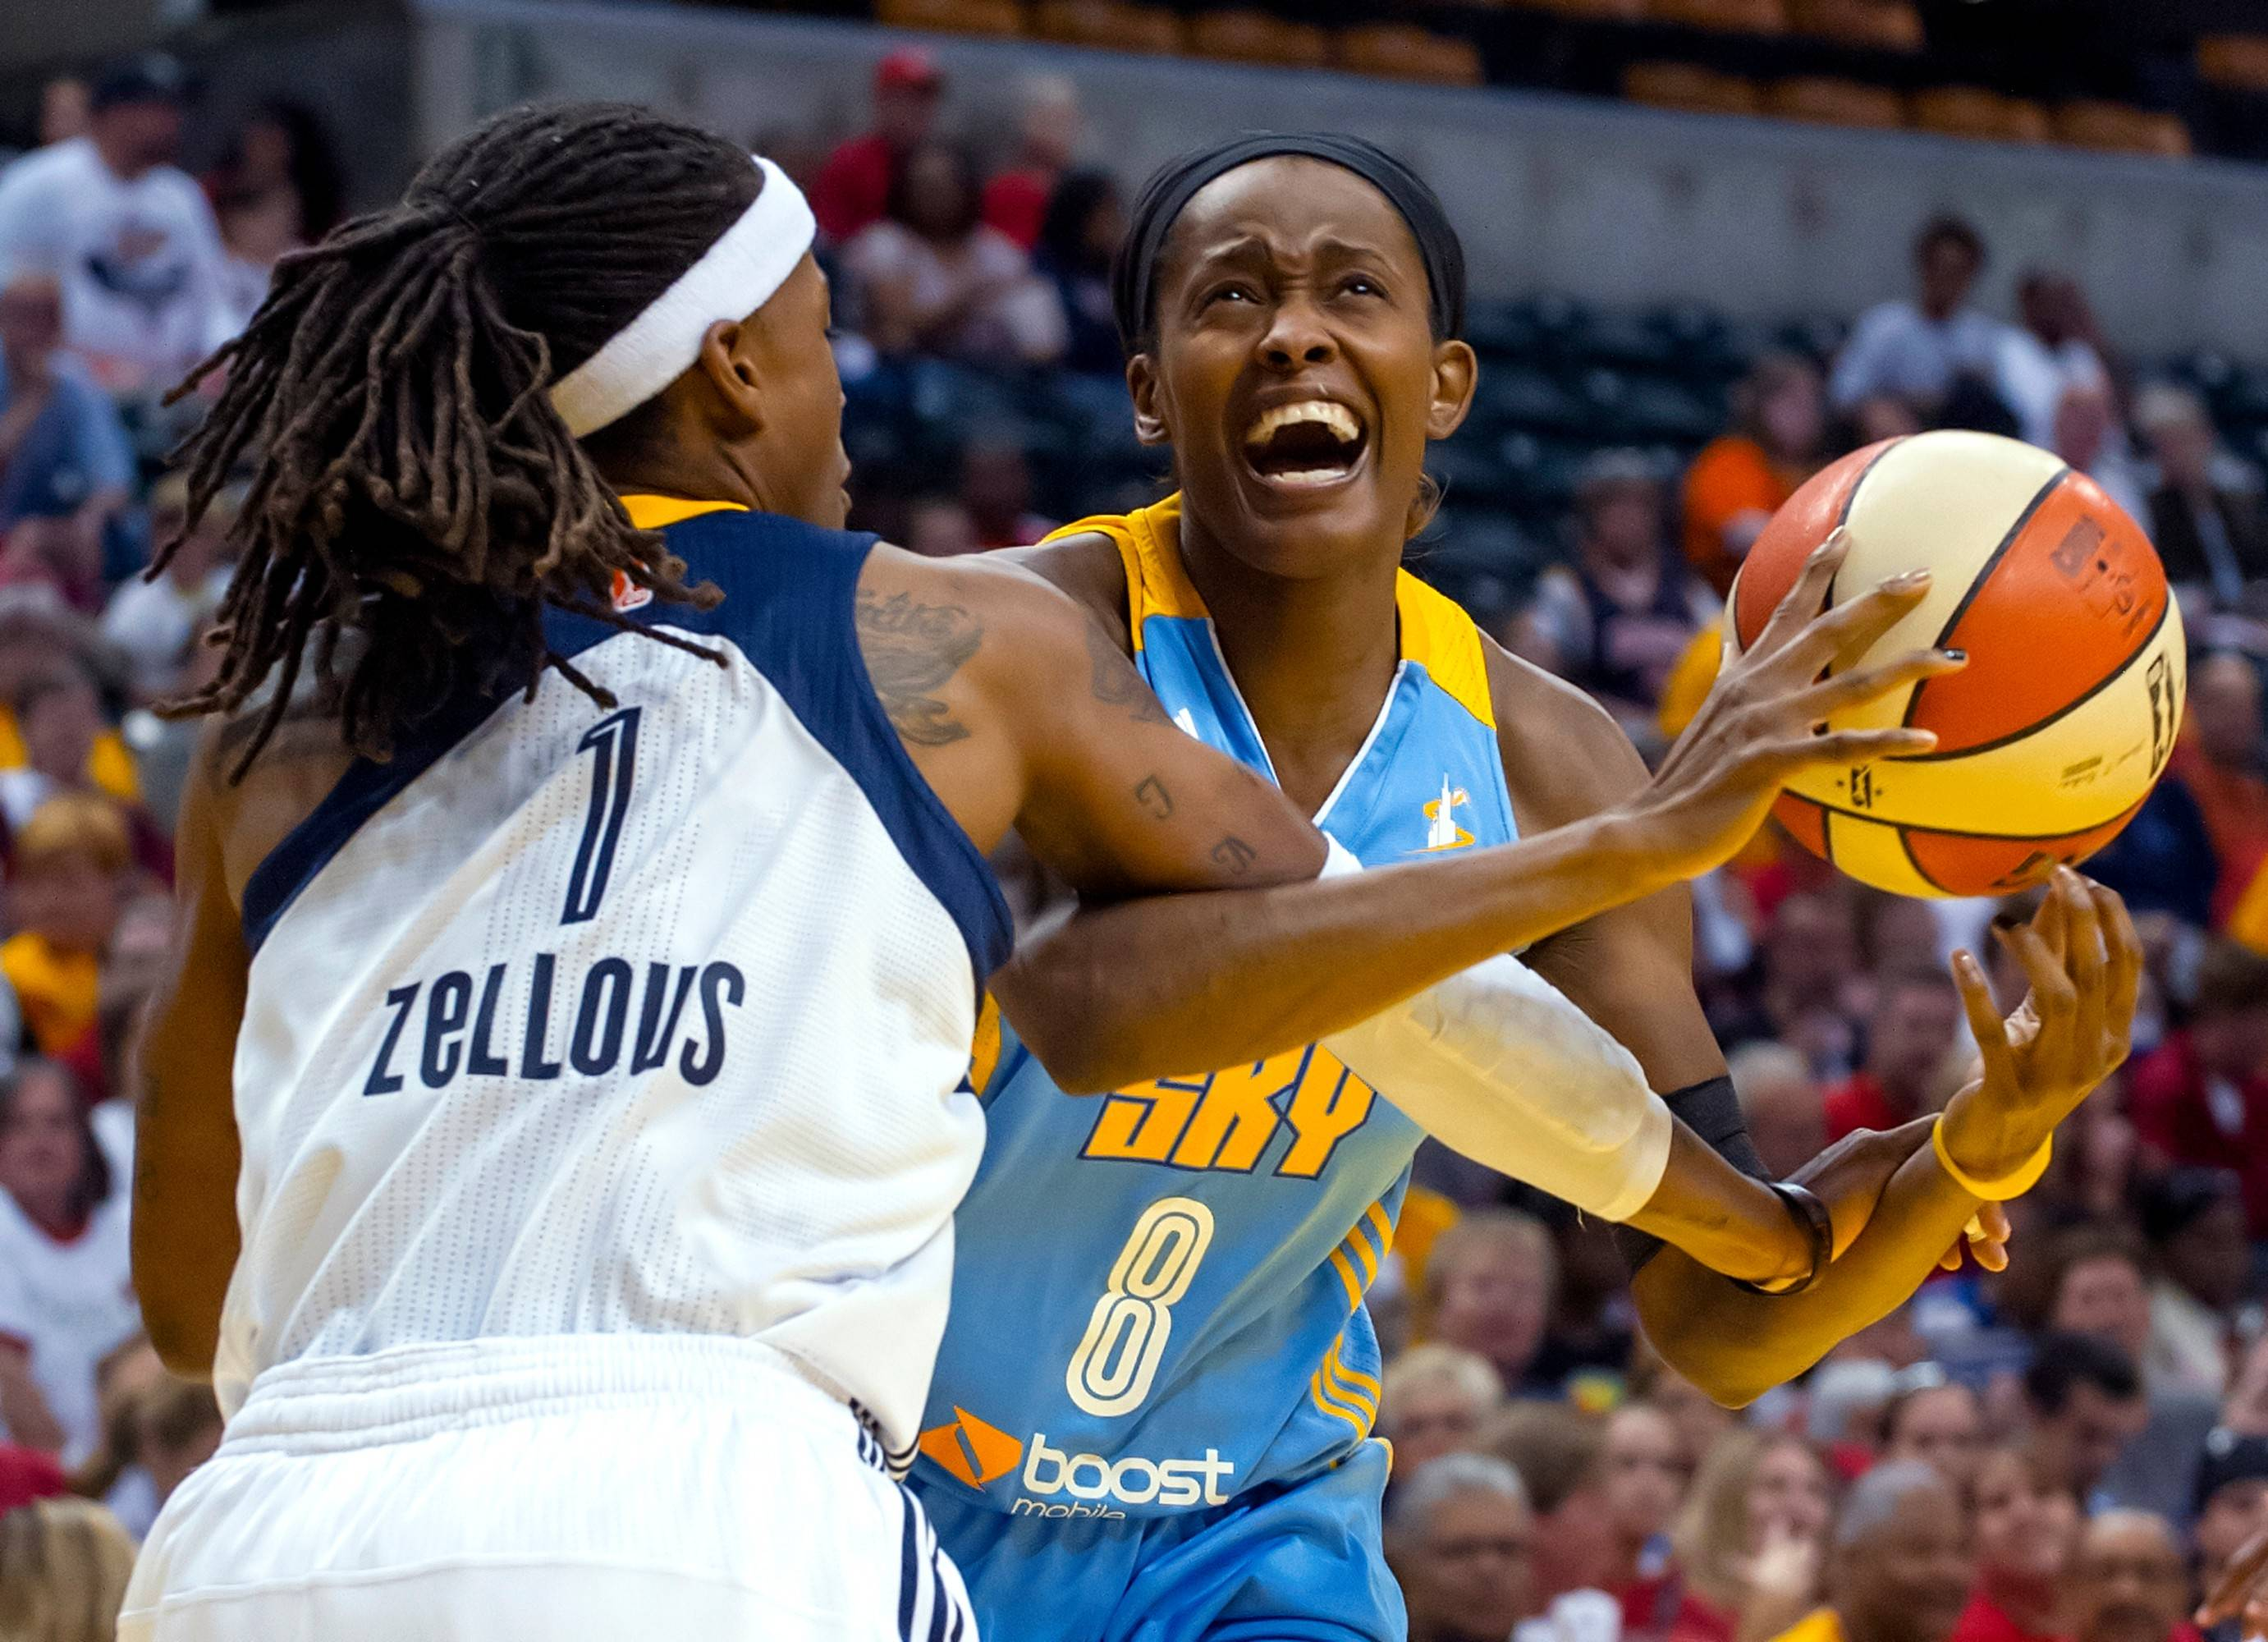 After starting every game for two seasons with the Chicago Sky, forward Swin Cash (8) couldn't agree on a new contract and is searching for a new team.